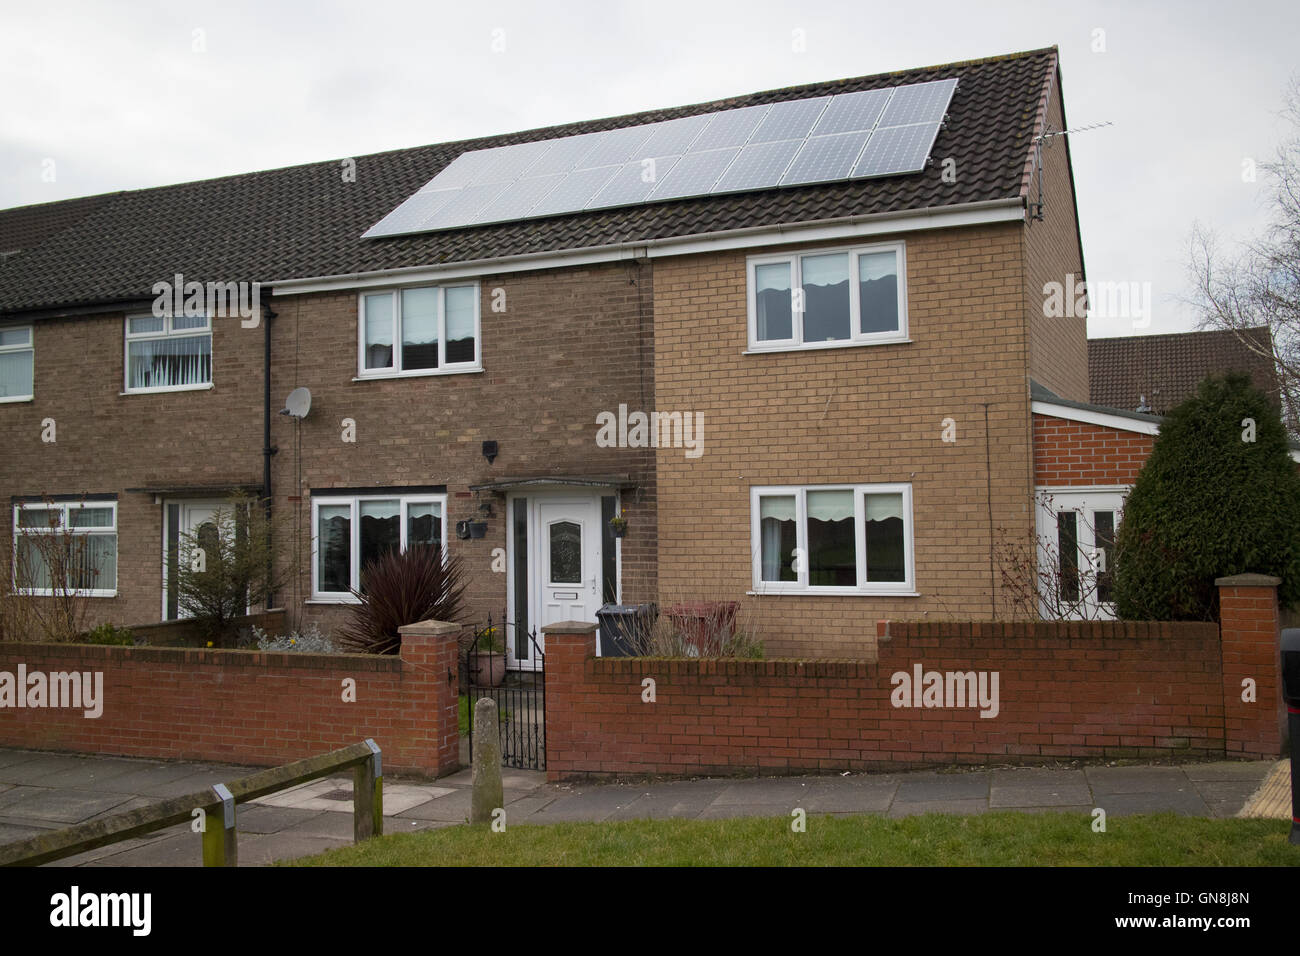 solar panels on the roof of an end terrace property on a housing estate on overcast day Liverpool Merseyside UK - Stock Image